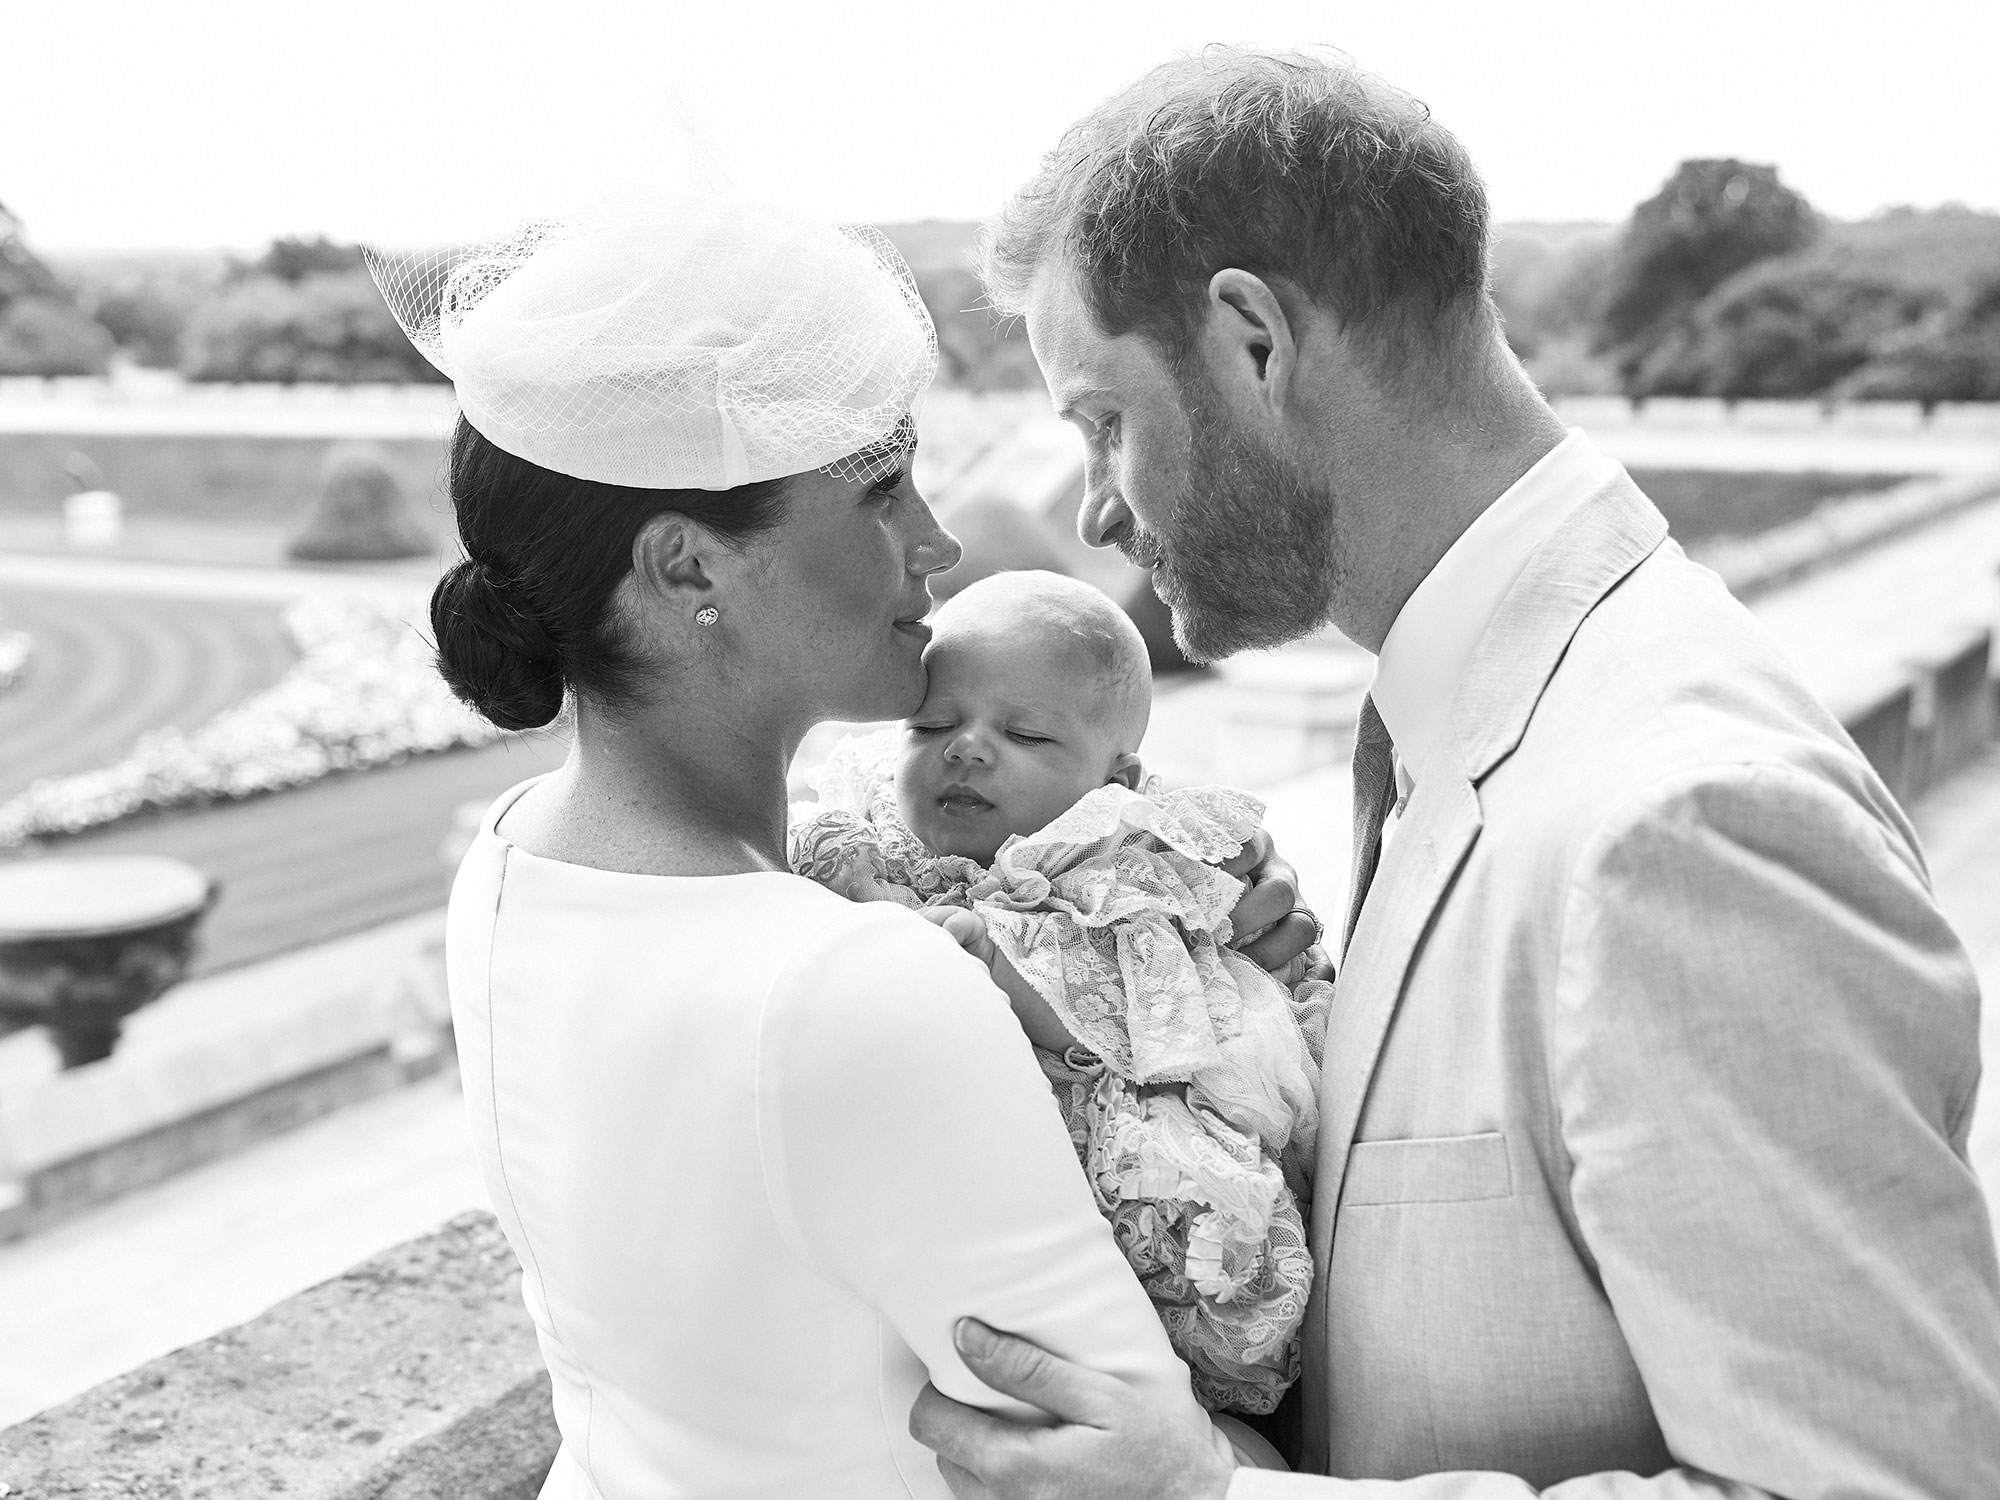 Meghan Markle and Prince Harry Sent This Sweet Thank-You Note After Archie's Christening